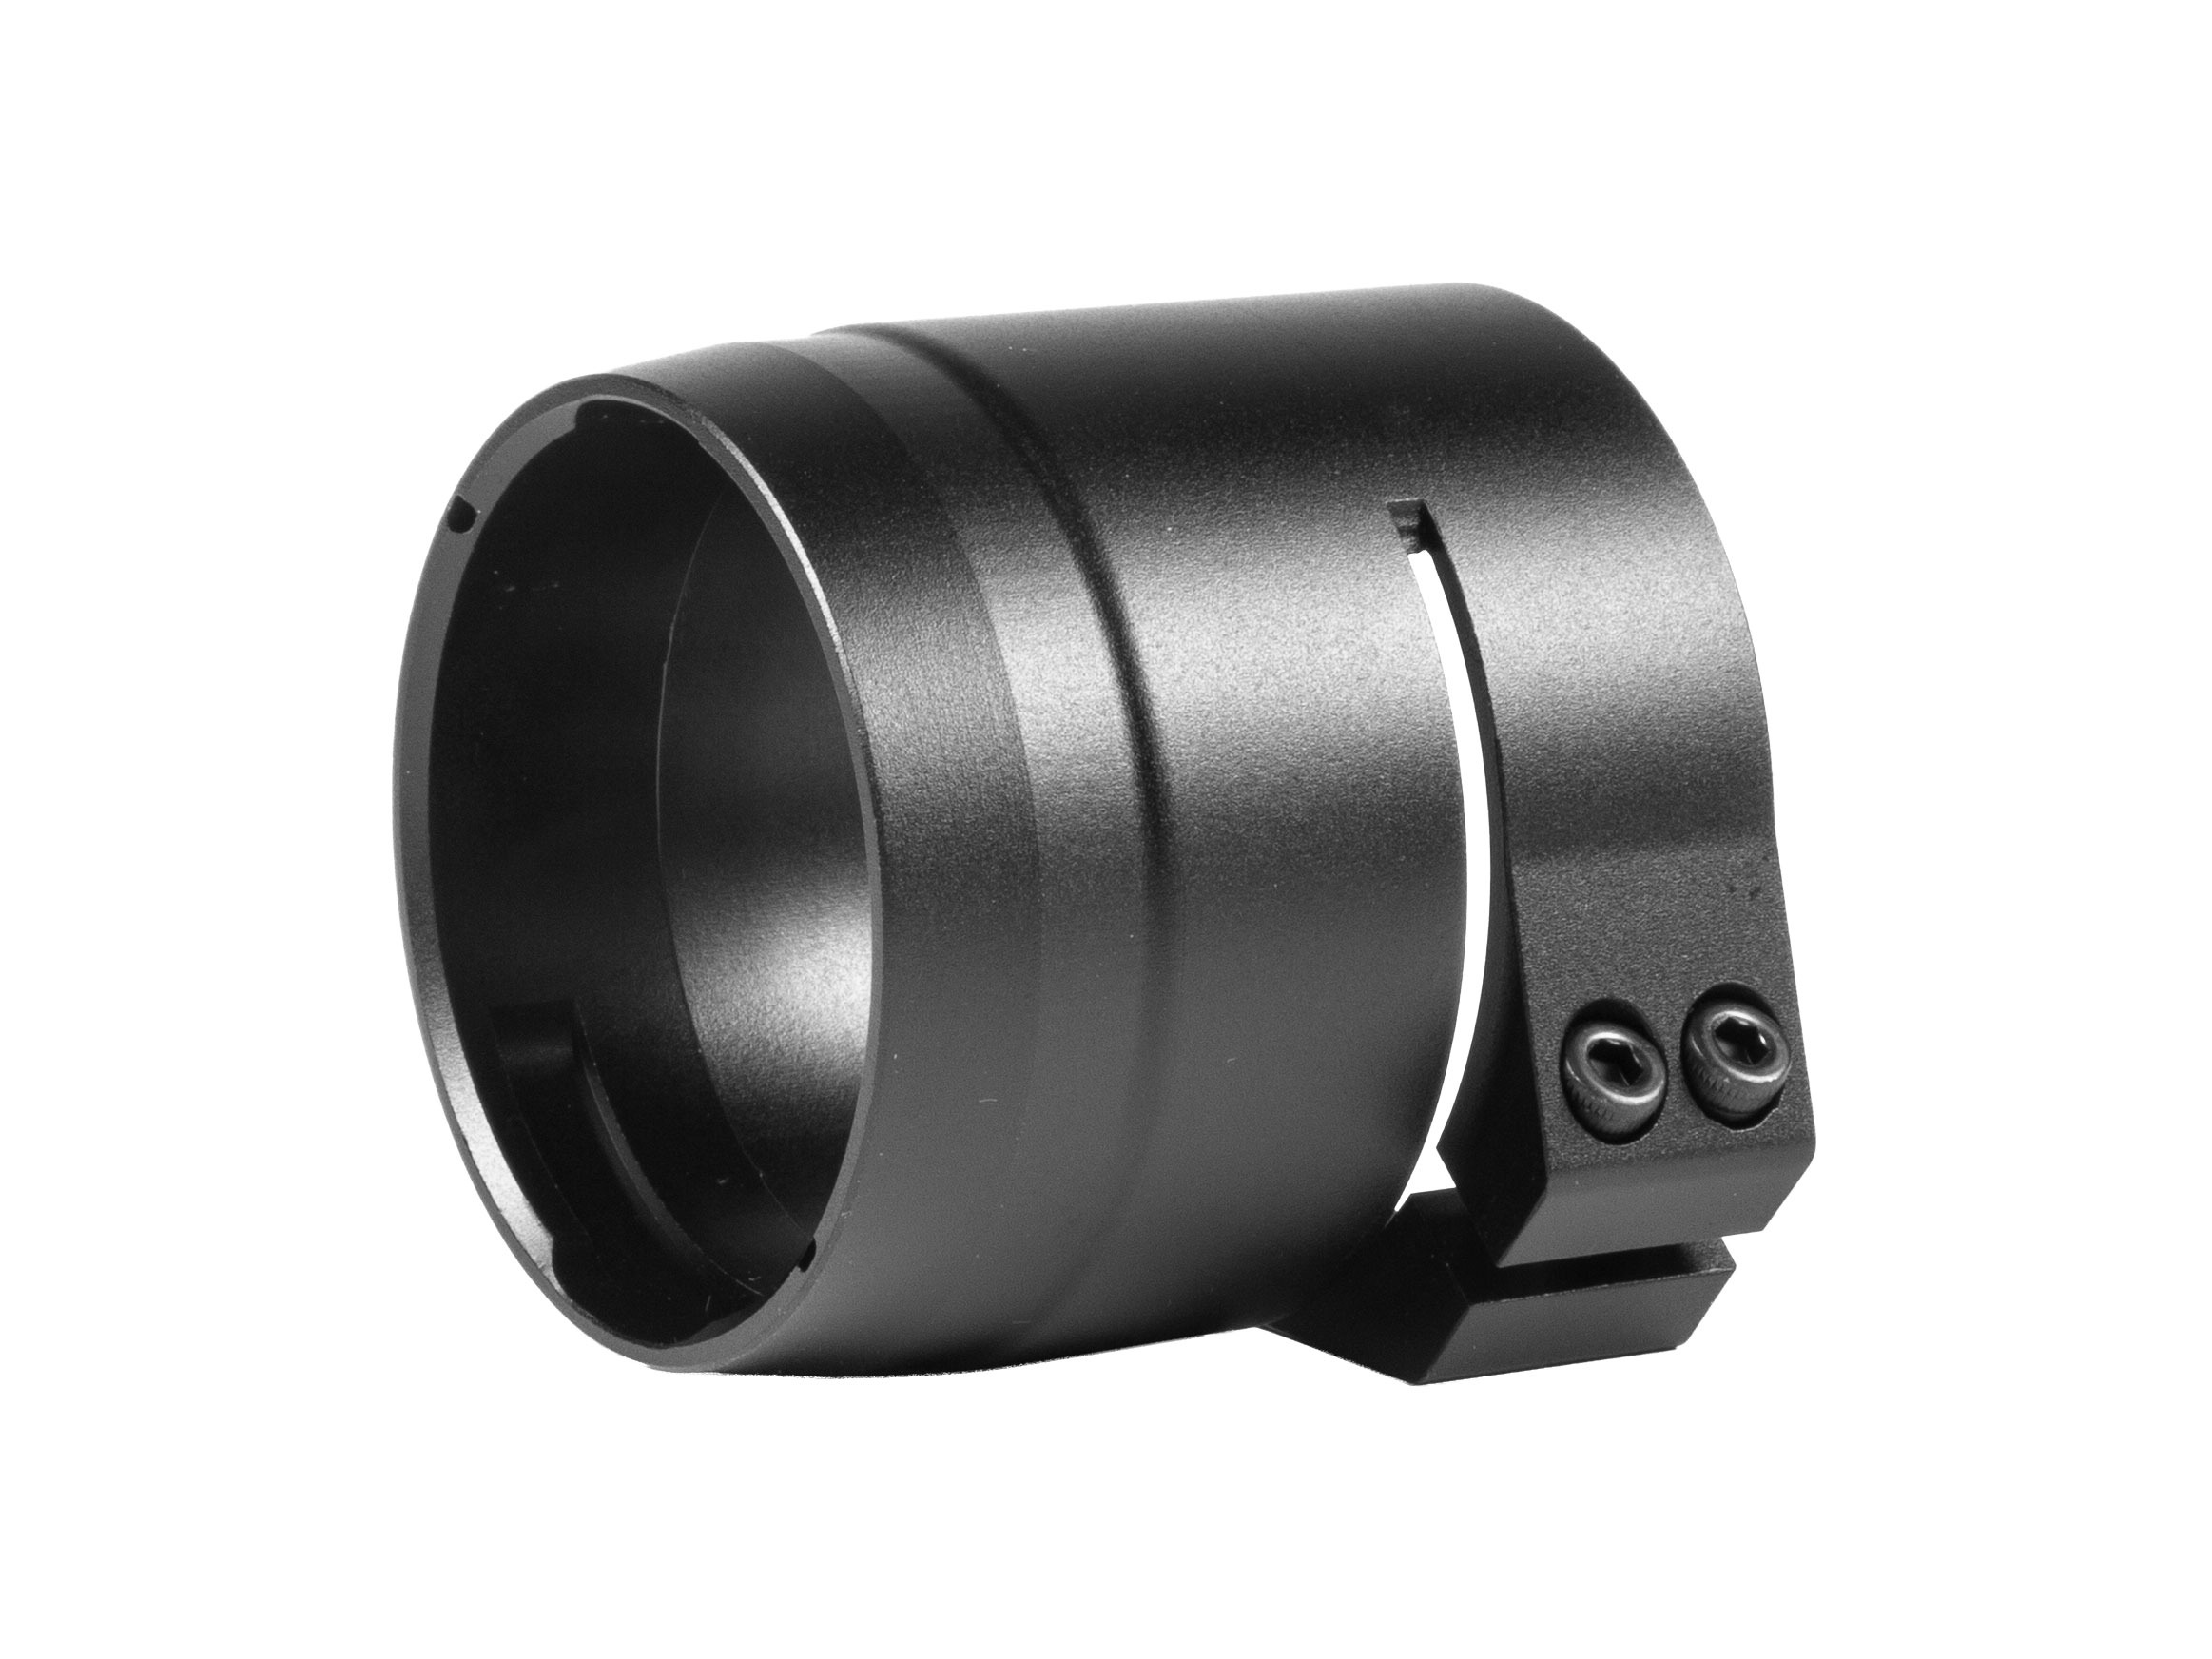 Image of Adapter 48 mm do pard hd nv-007 (443-003)